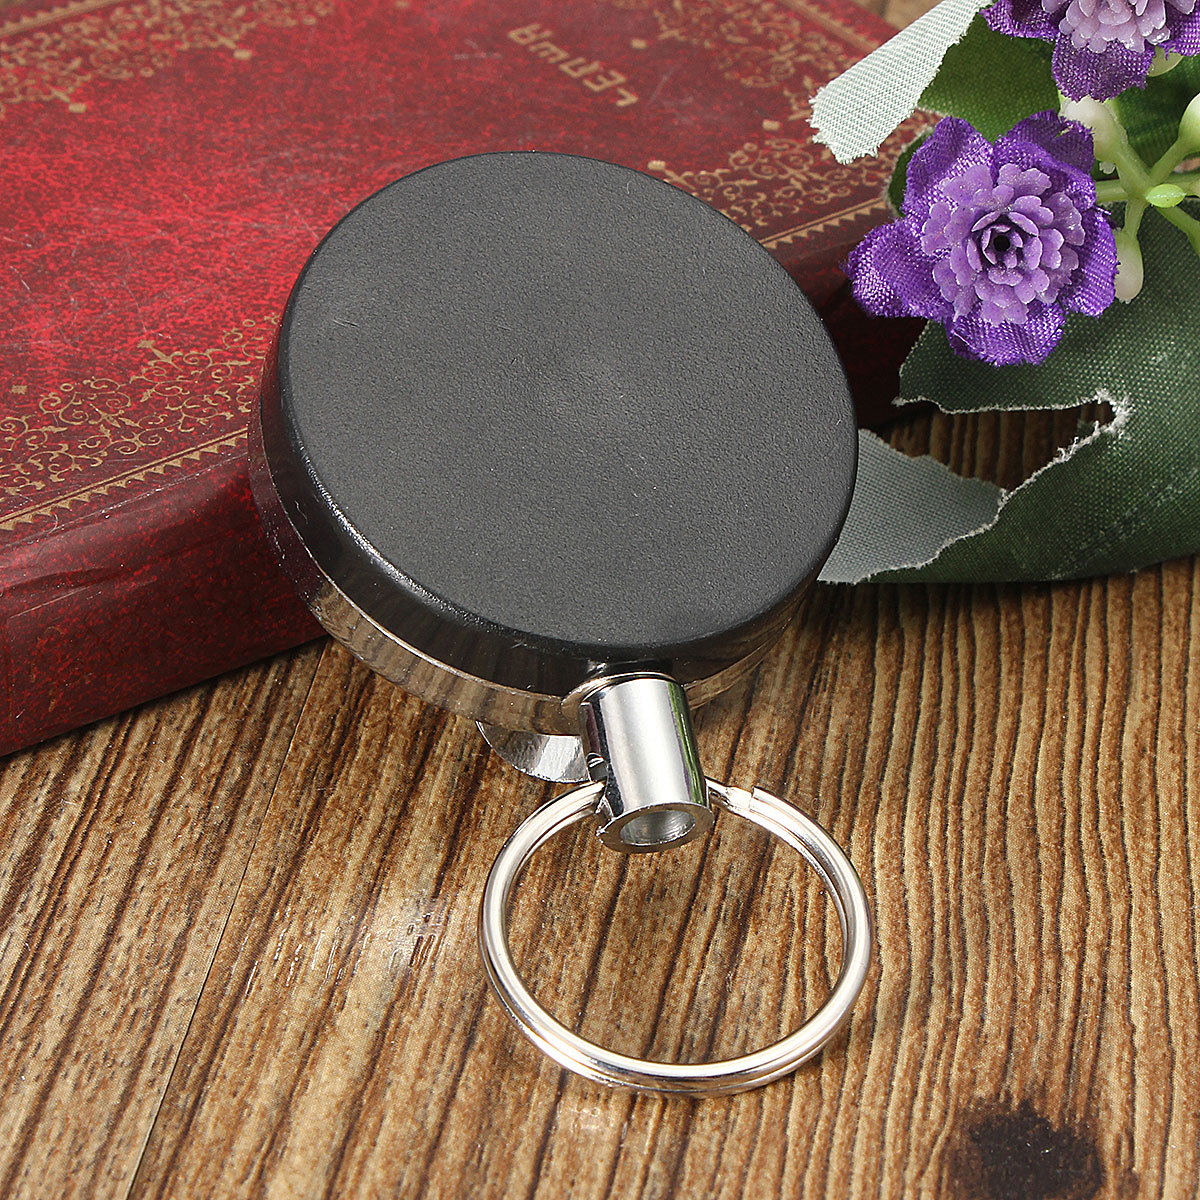 40x40mm Round Metal Telescopic Keychain Belt Clip Keyring EDC Tool